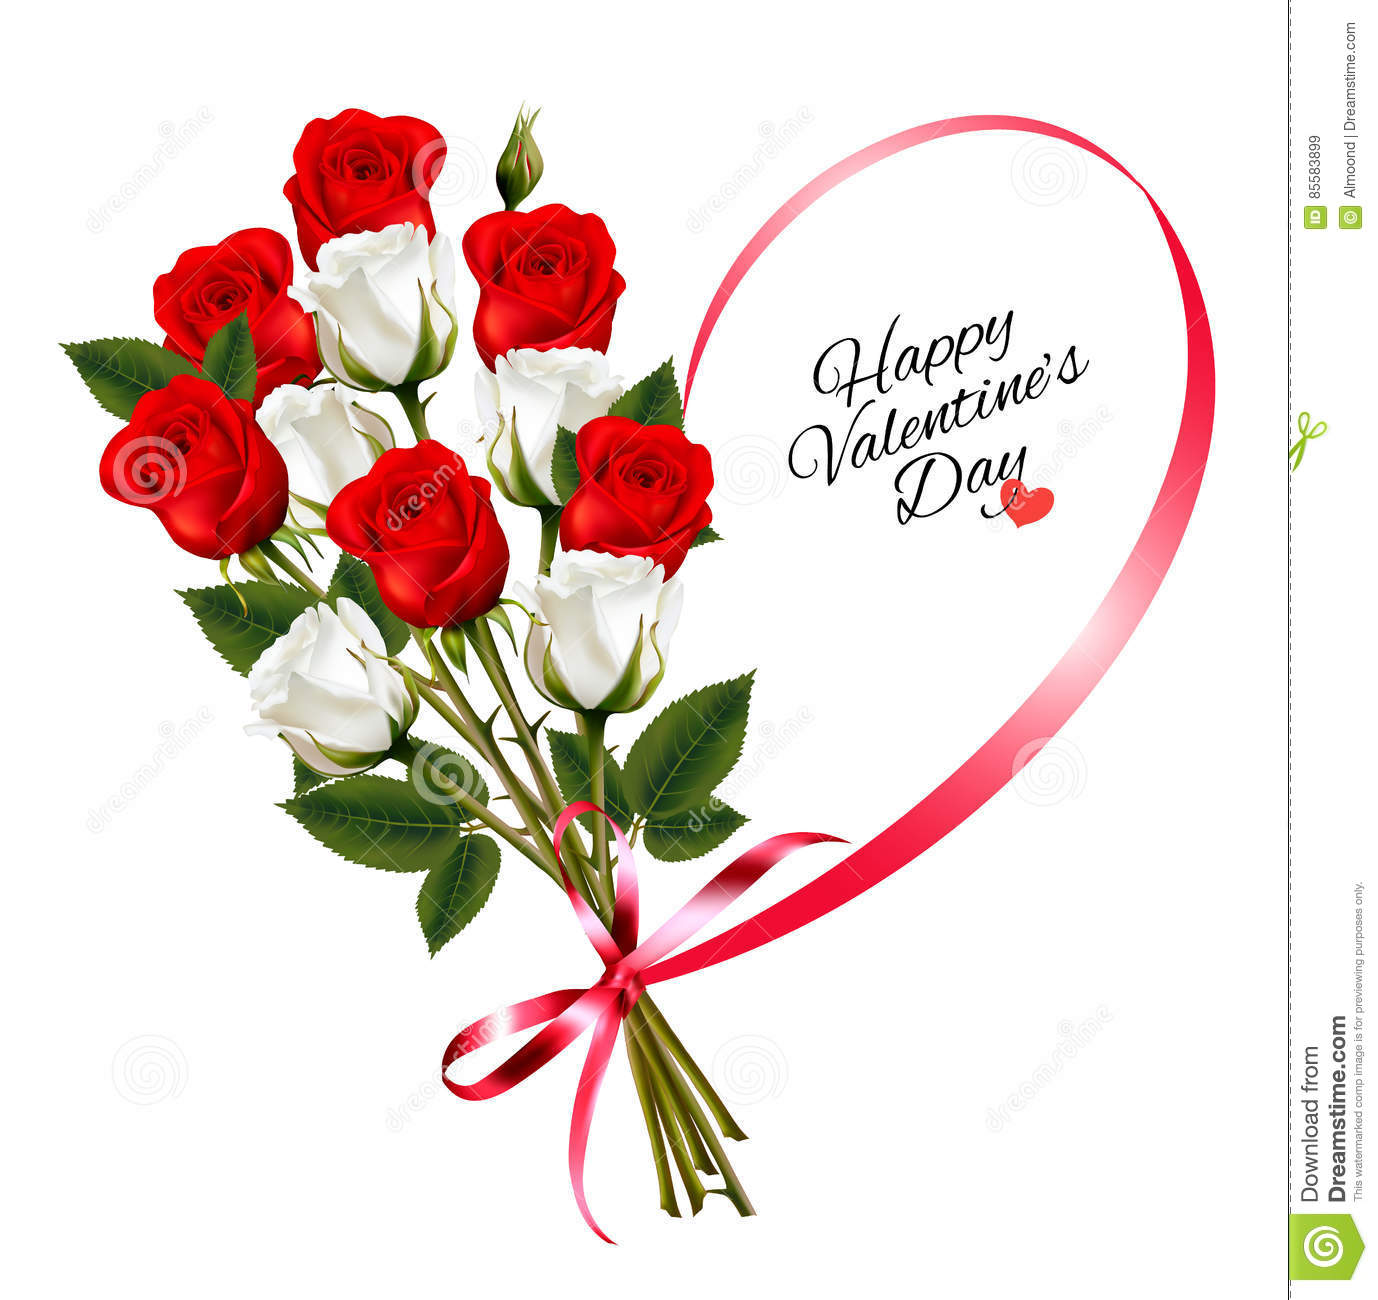 Happy valentines day beautiful background with roses stock vector happy valentines day beautiful background with roses izmirmasajfo